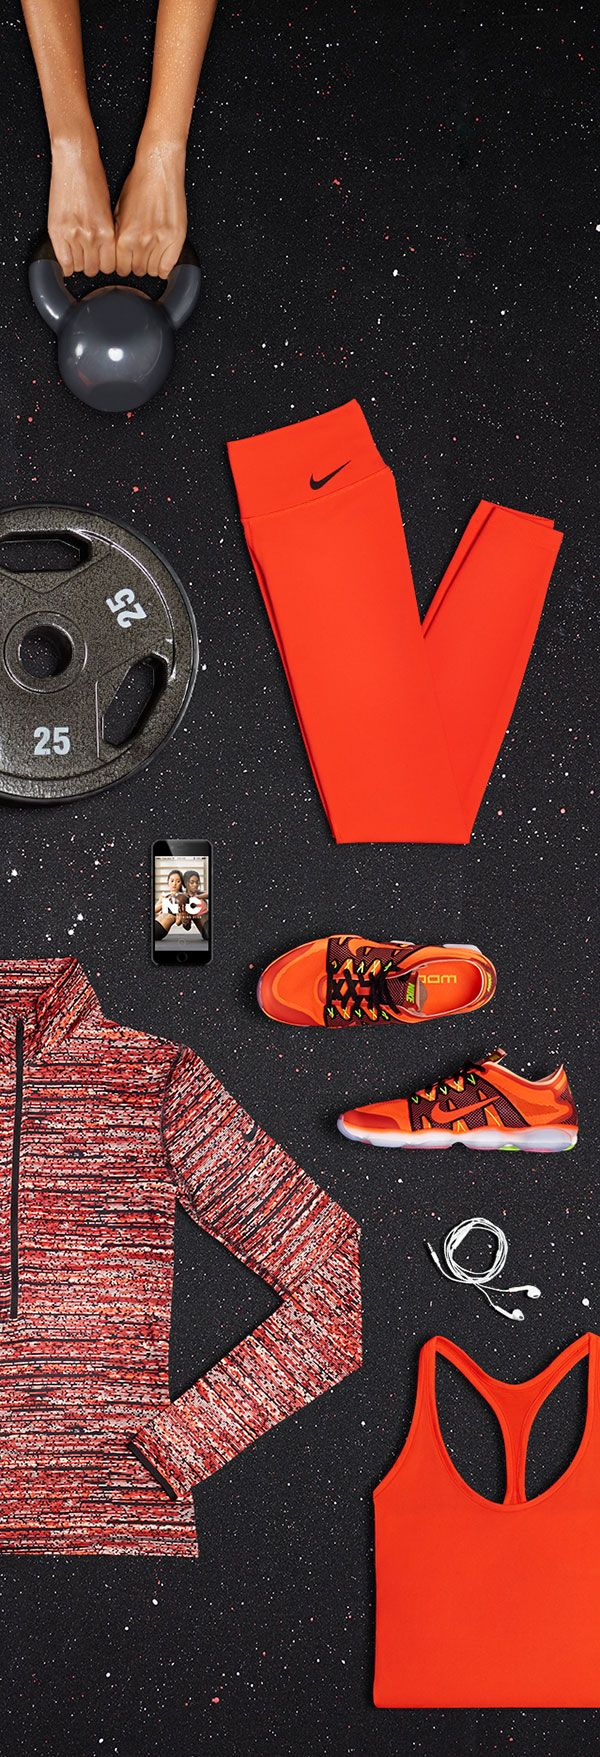 Tops and tights to keep you cool and dry, and a high-energy gym playlist to distract you from all those burpees. Get strong with the Nike Stronger-Than-Steel Fit Kit.